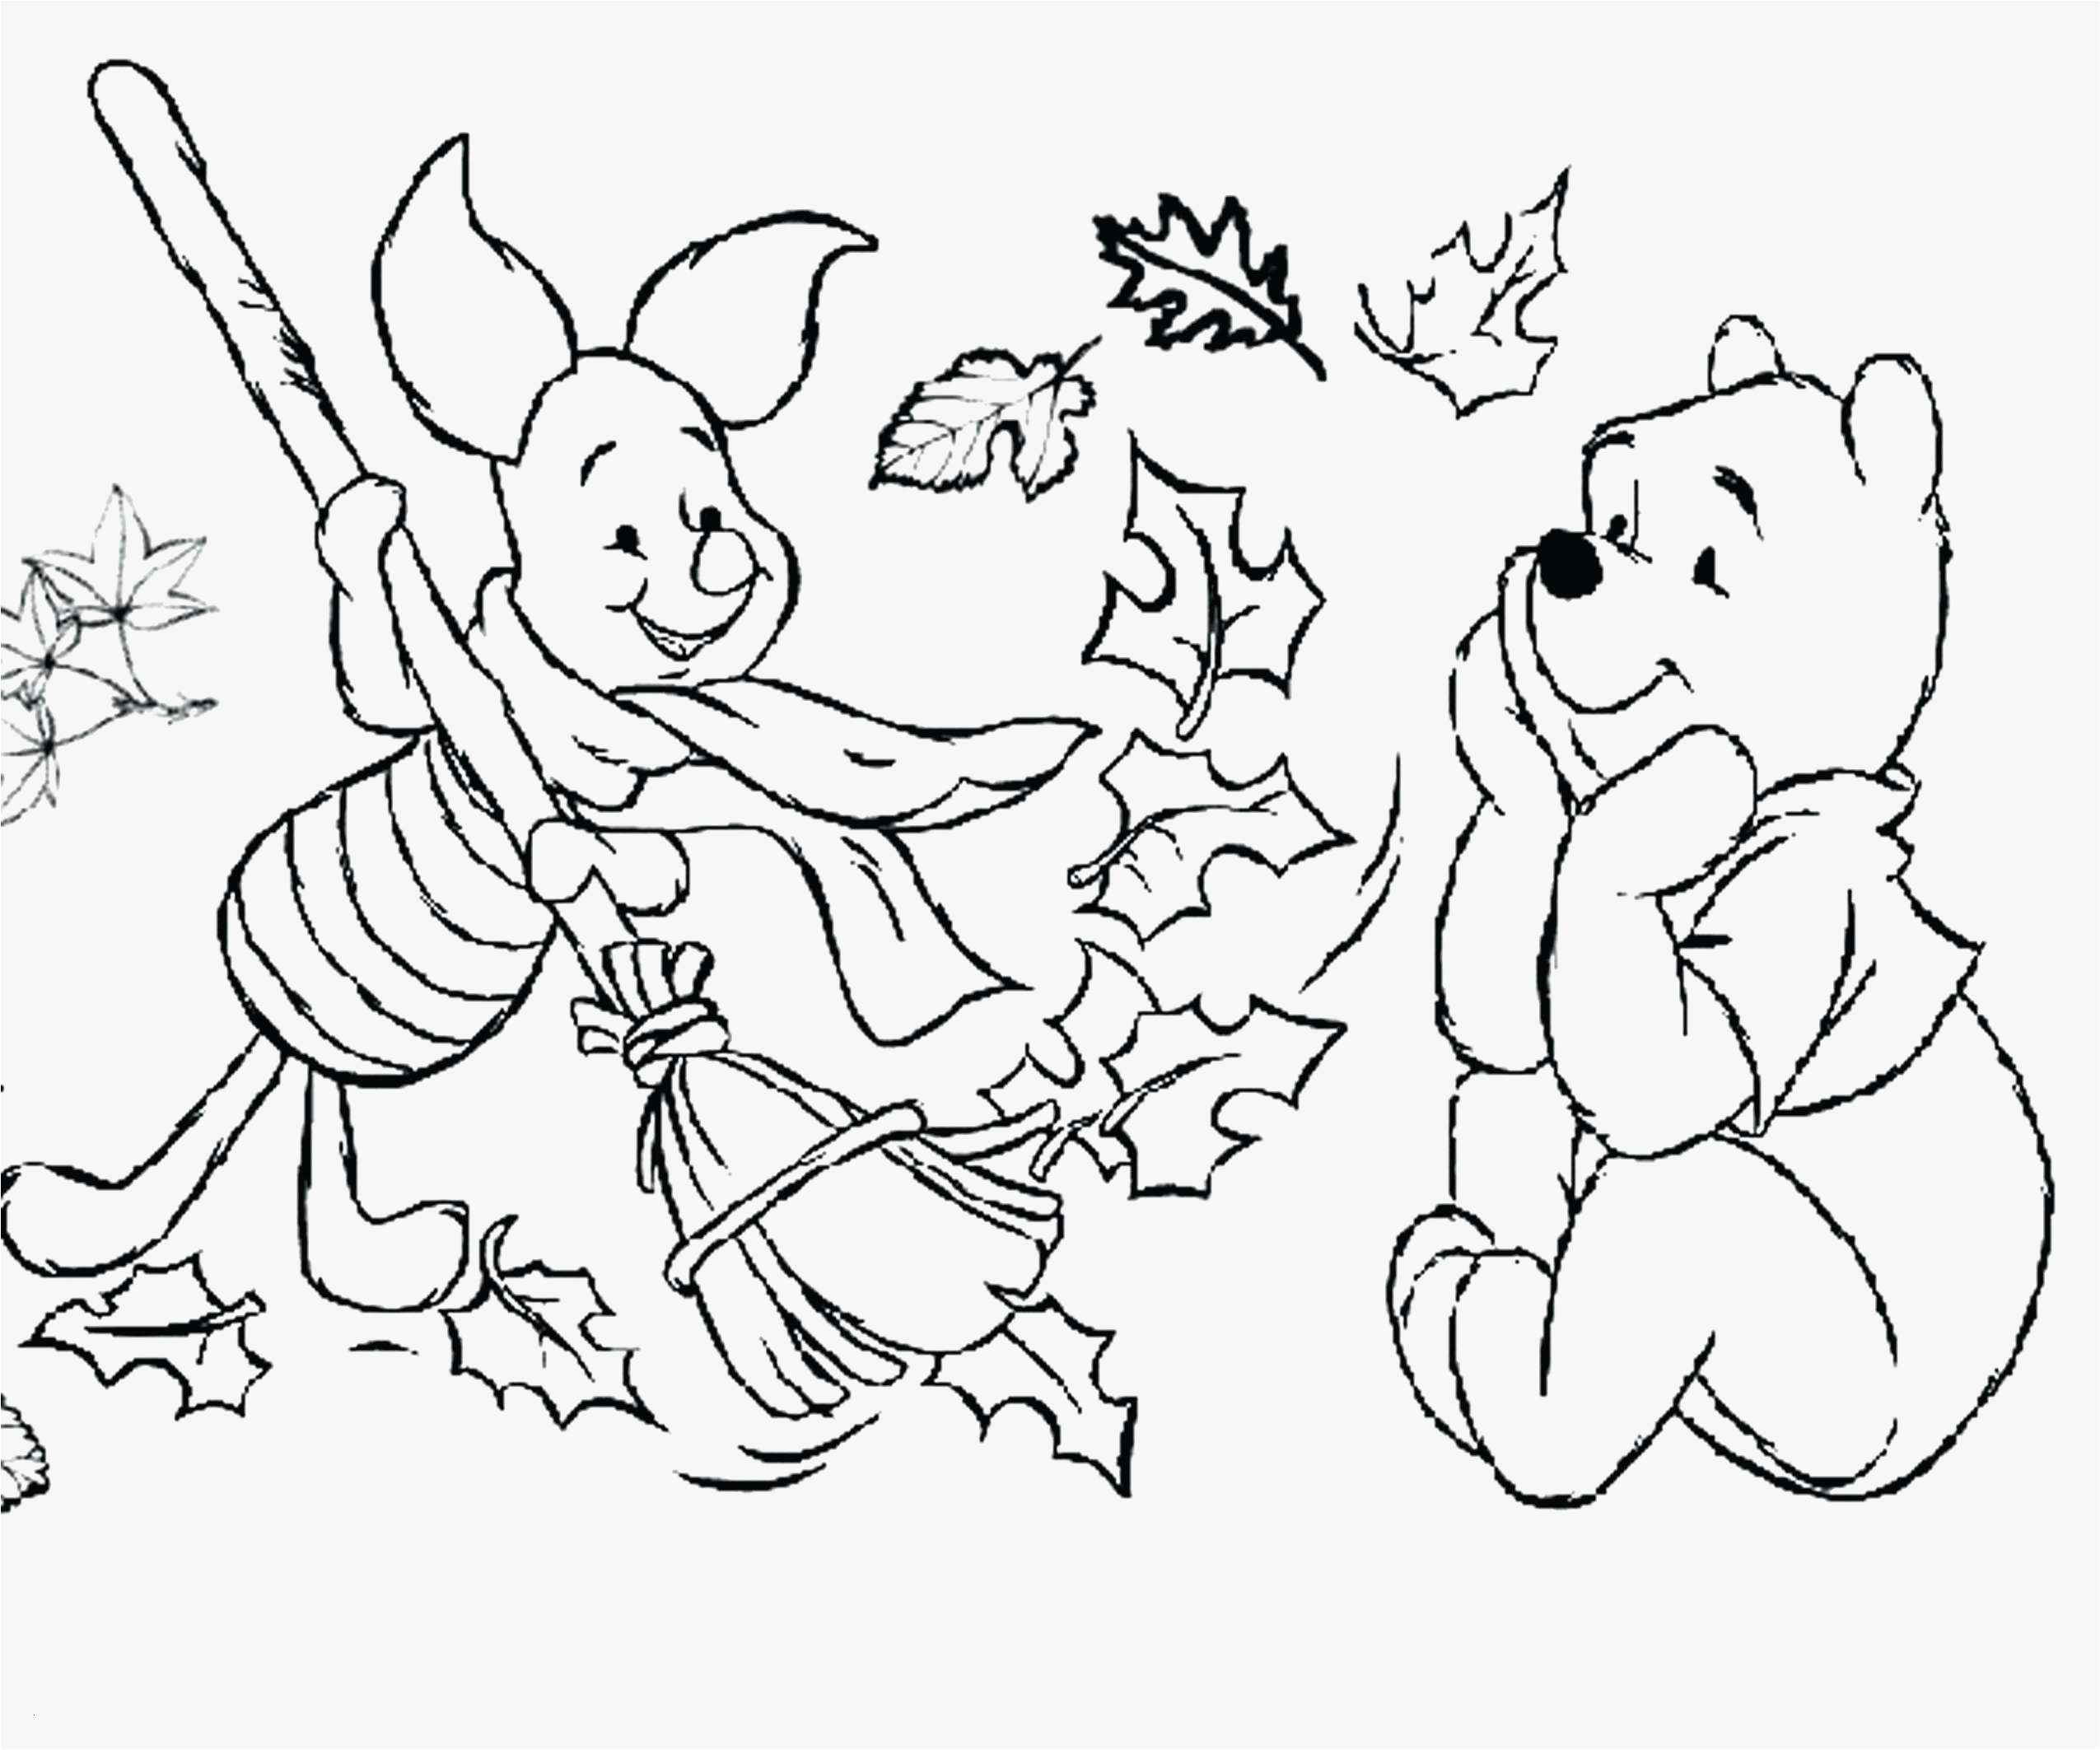 Hans Coloring Pages  Gallery 1q - Free For Children